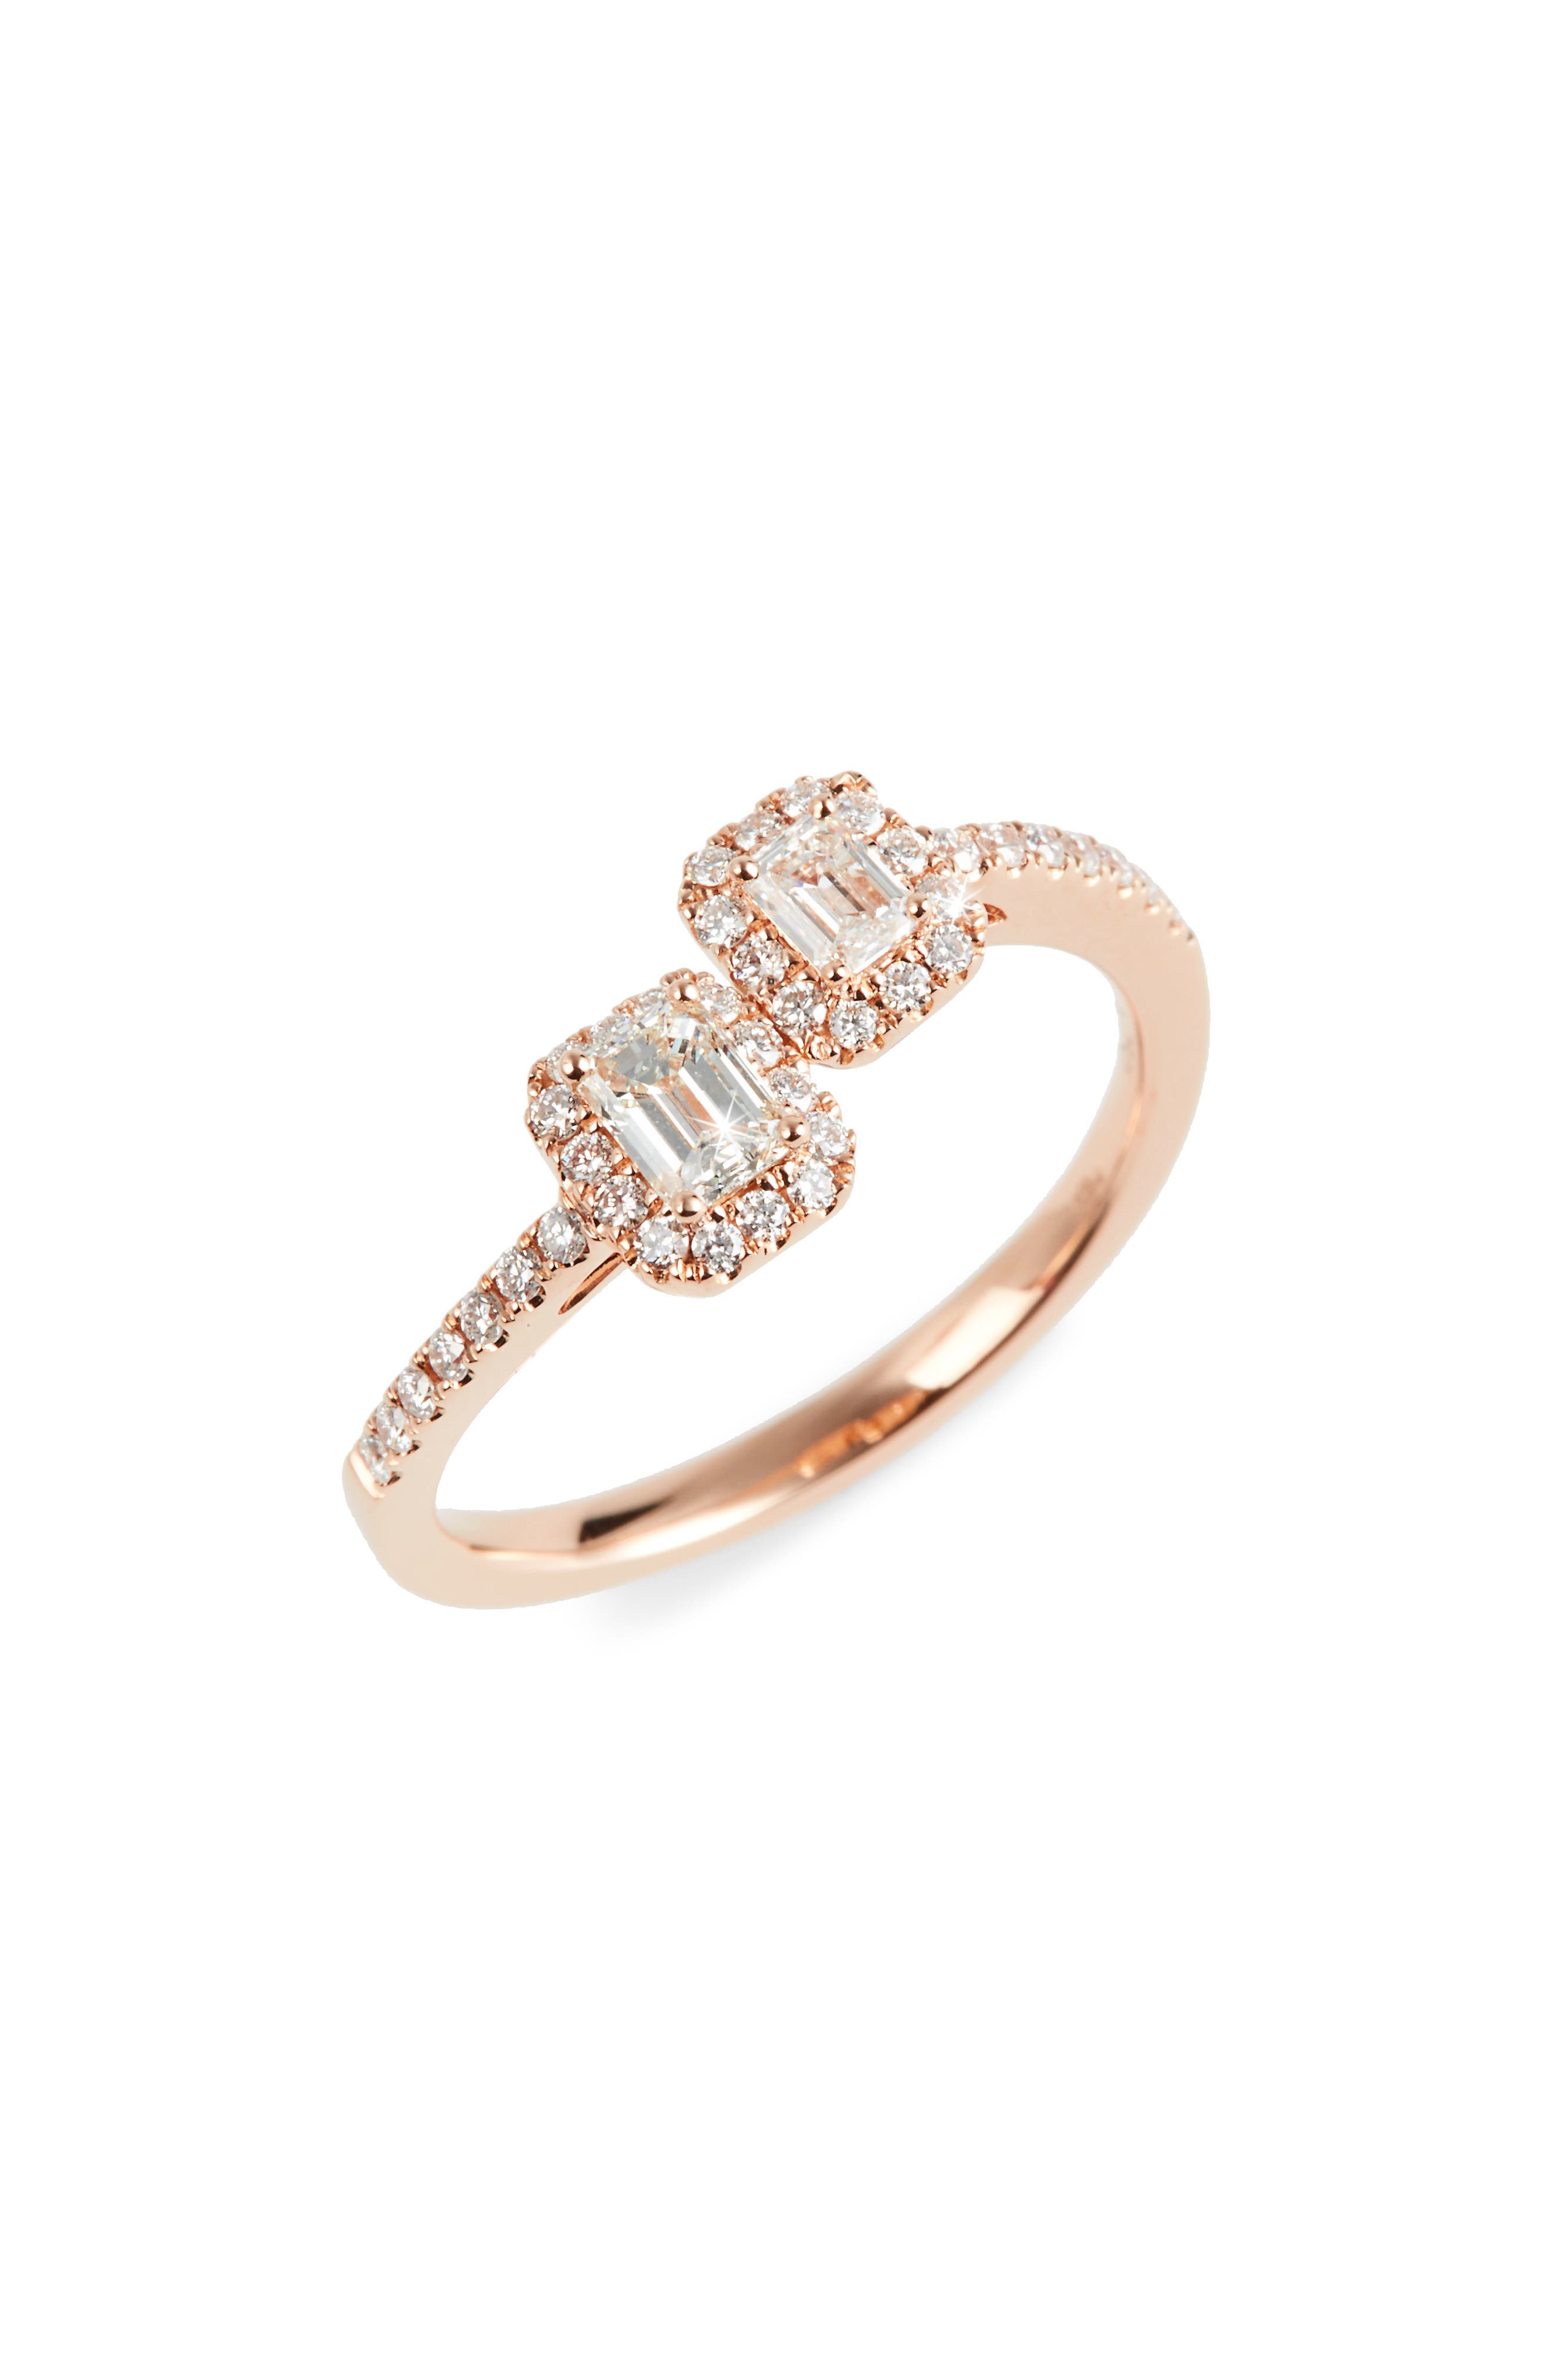 Stackable Diamond Ring,                         Main,                         color, Rose Gold